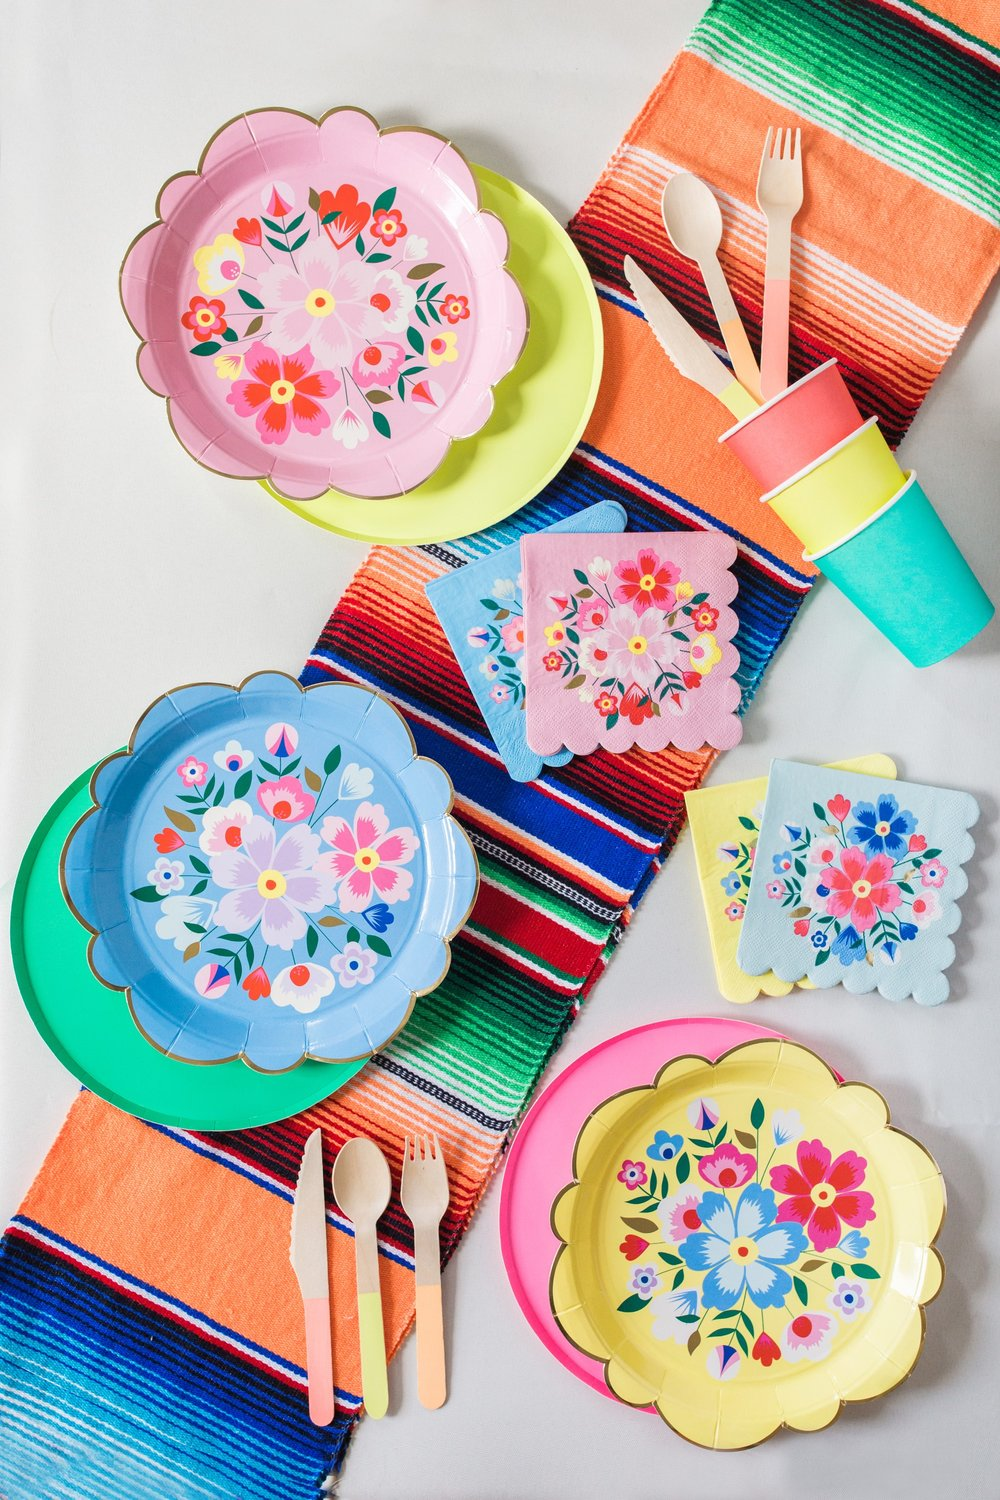 Viva la Fiesta - Get ready to fiesta with the ultimate fiesta party kit!Each Viva la Fiesta kit is perfect for parties with up to 24 party guests.Viva la fiesta!